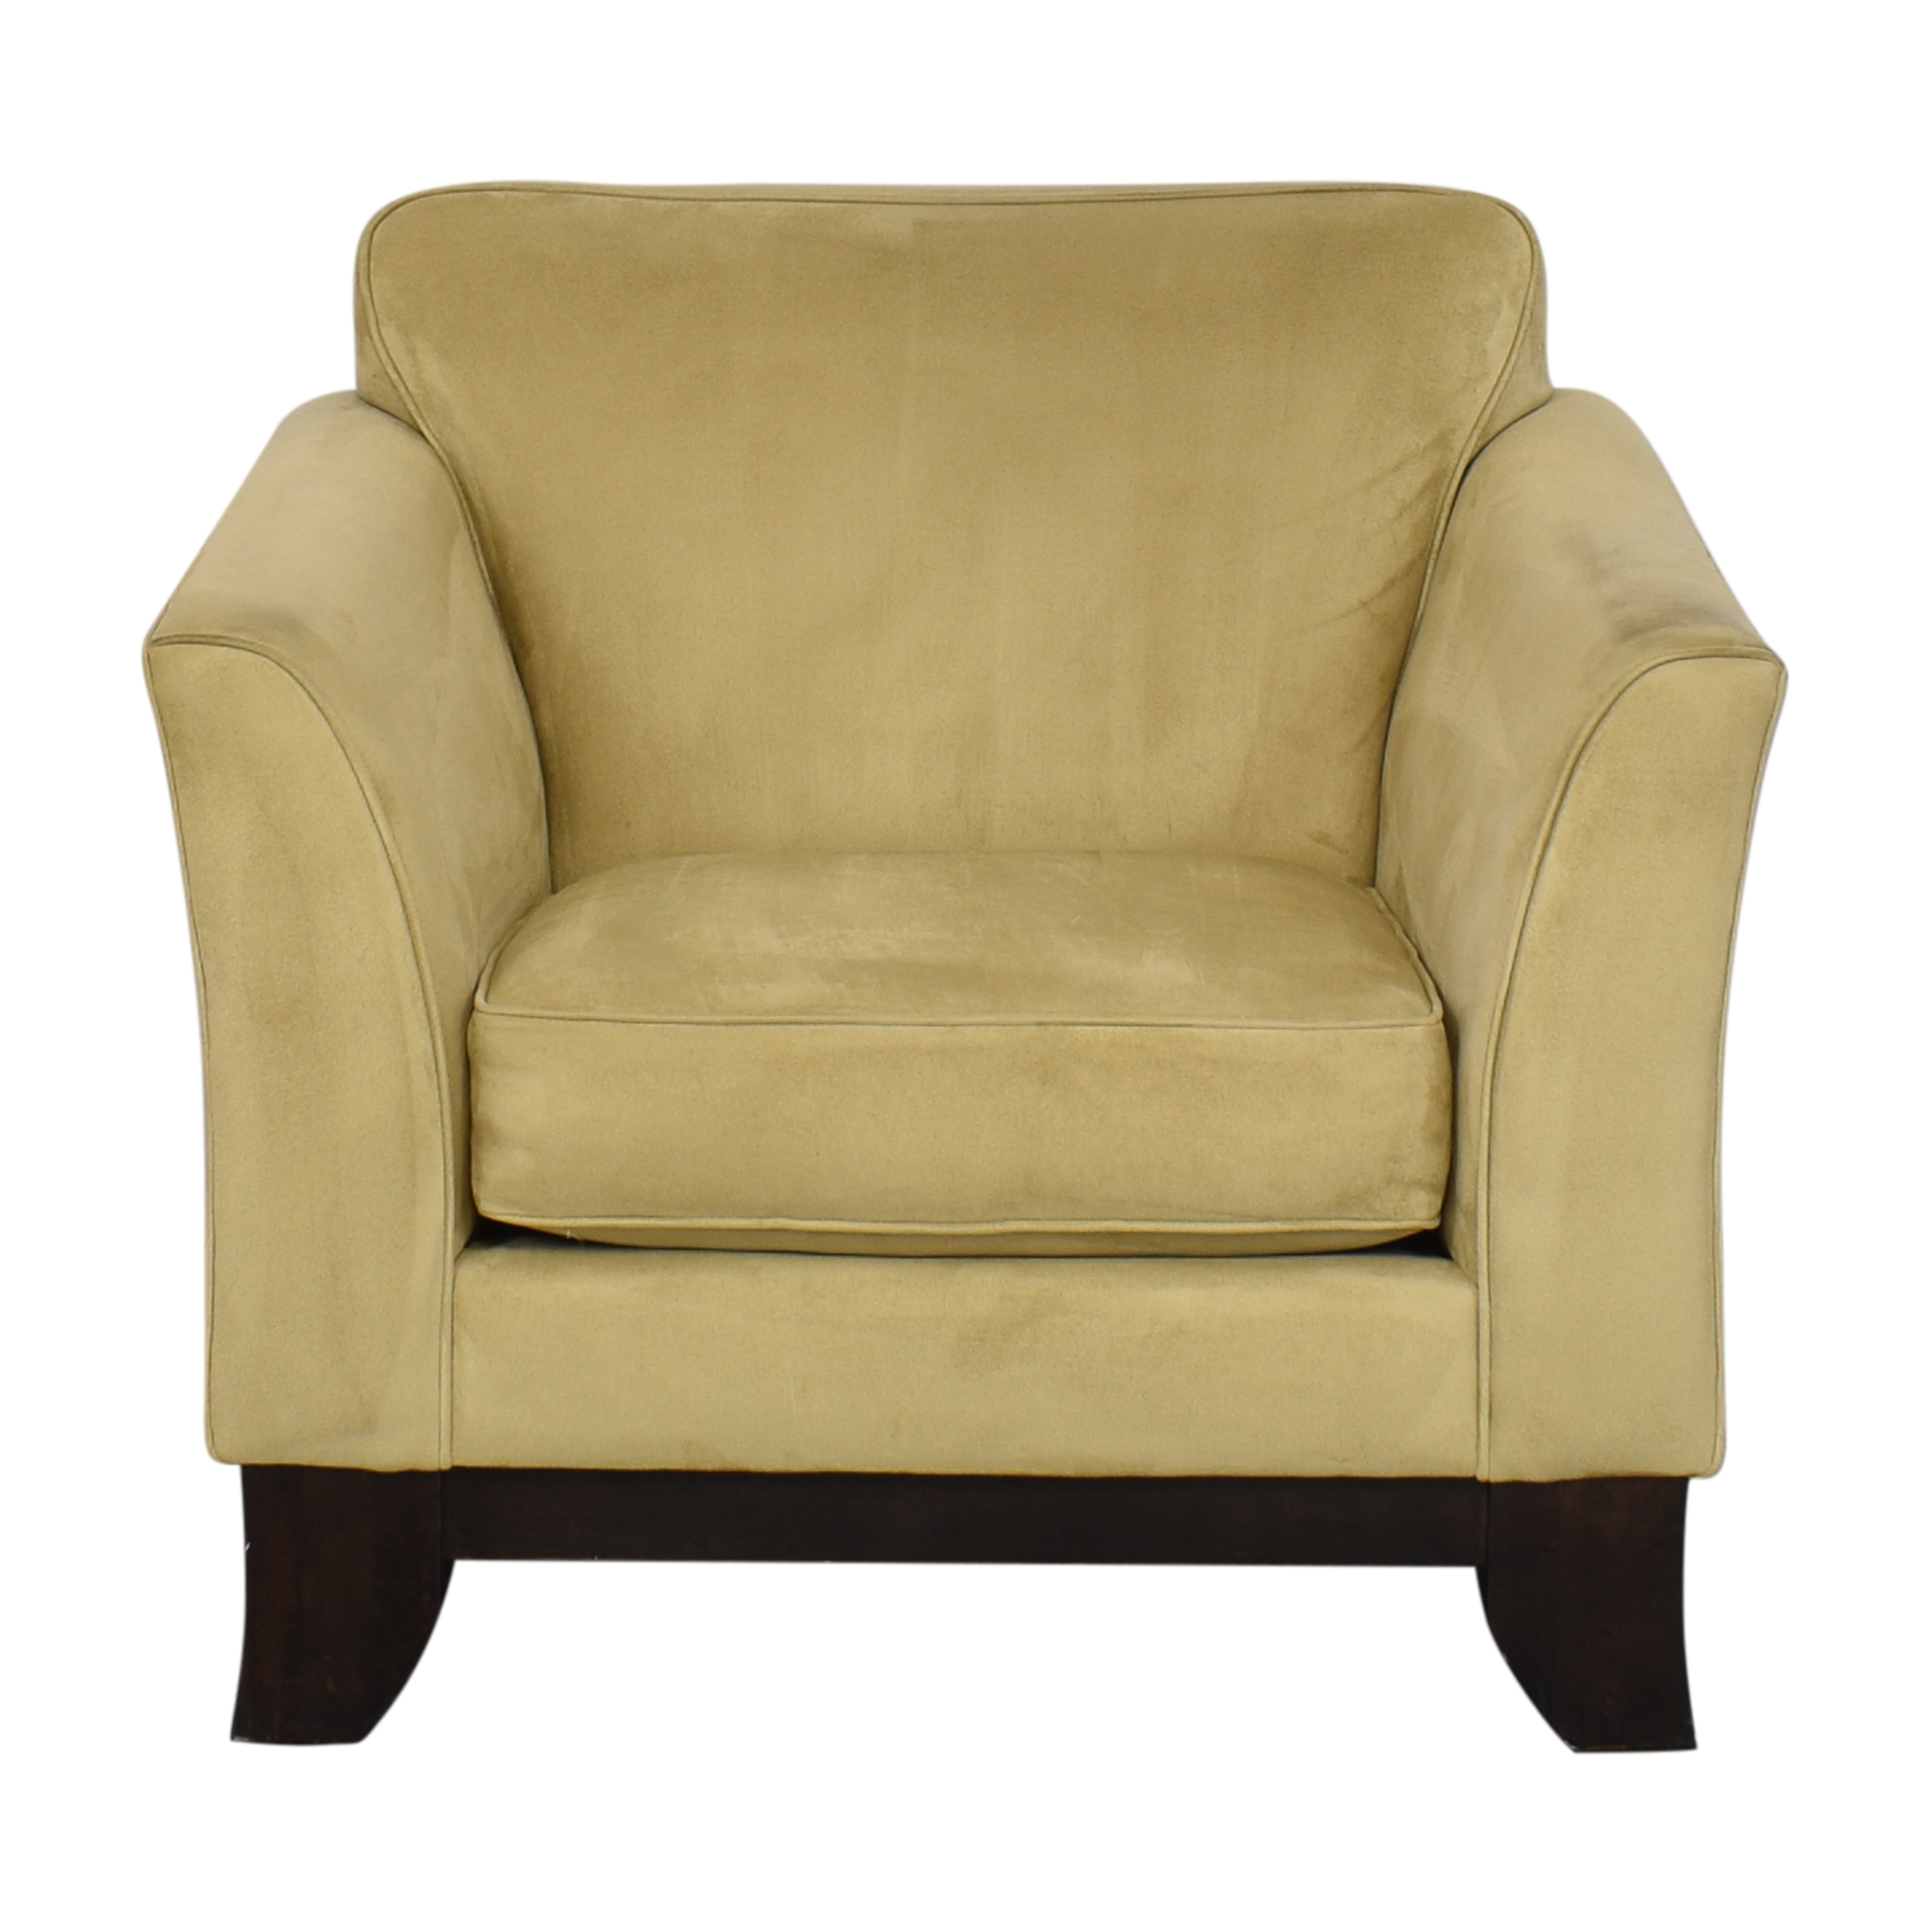 buy Pottery Barn Pottery Barn Greenwich Chair online